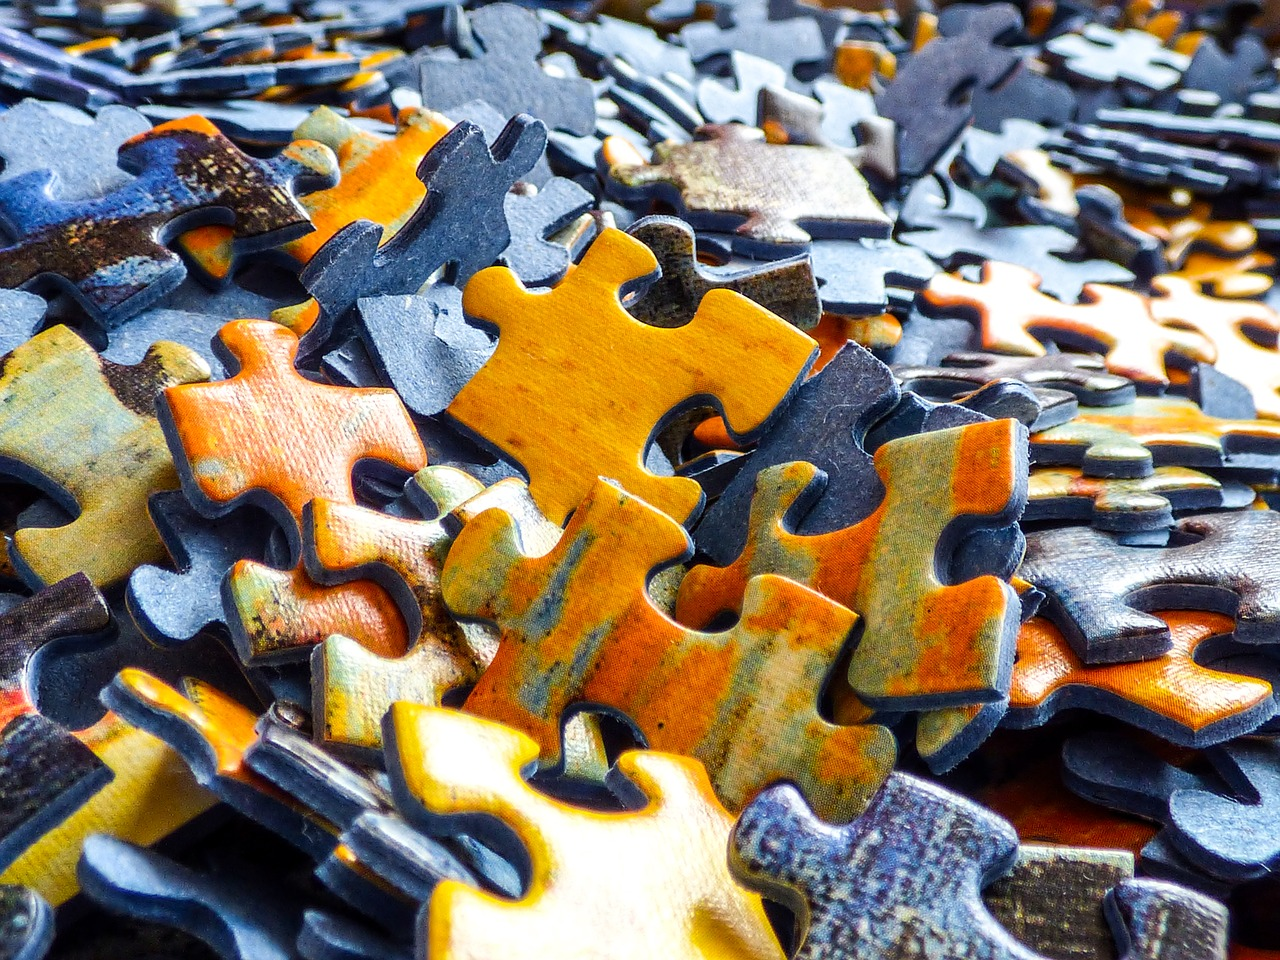 Being an Executor is like solving a puzzle